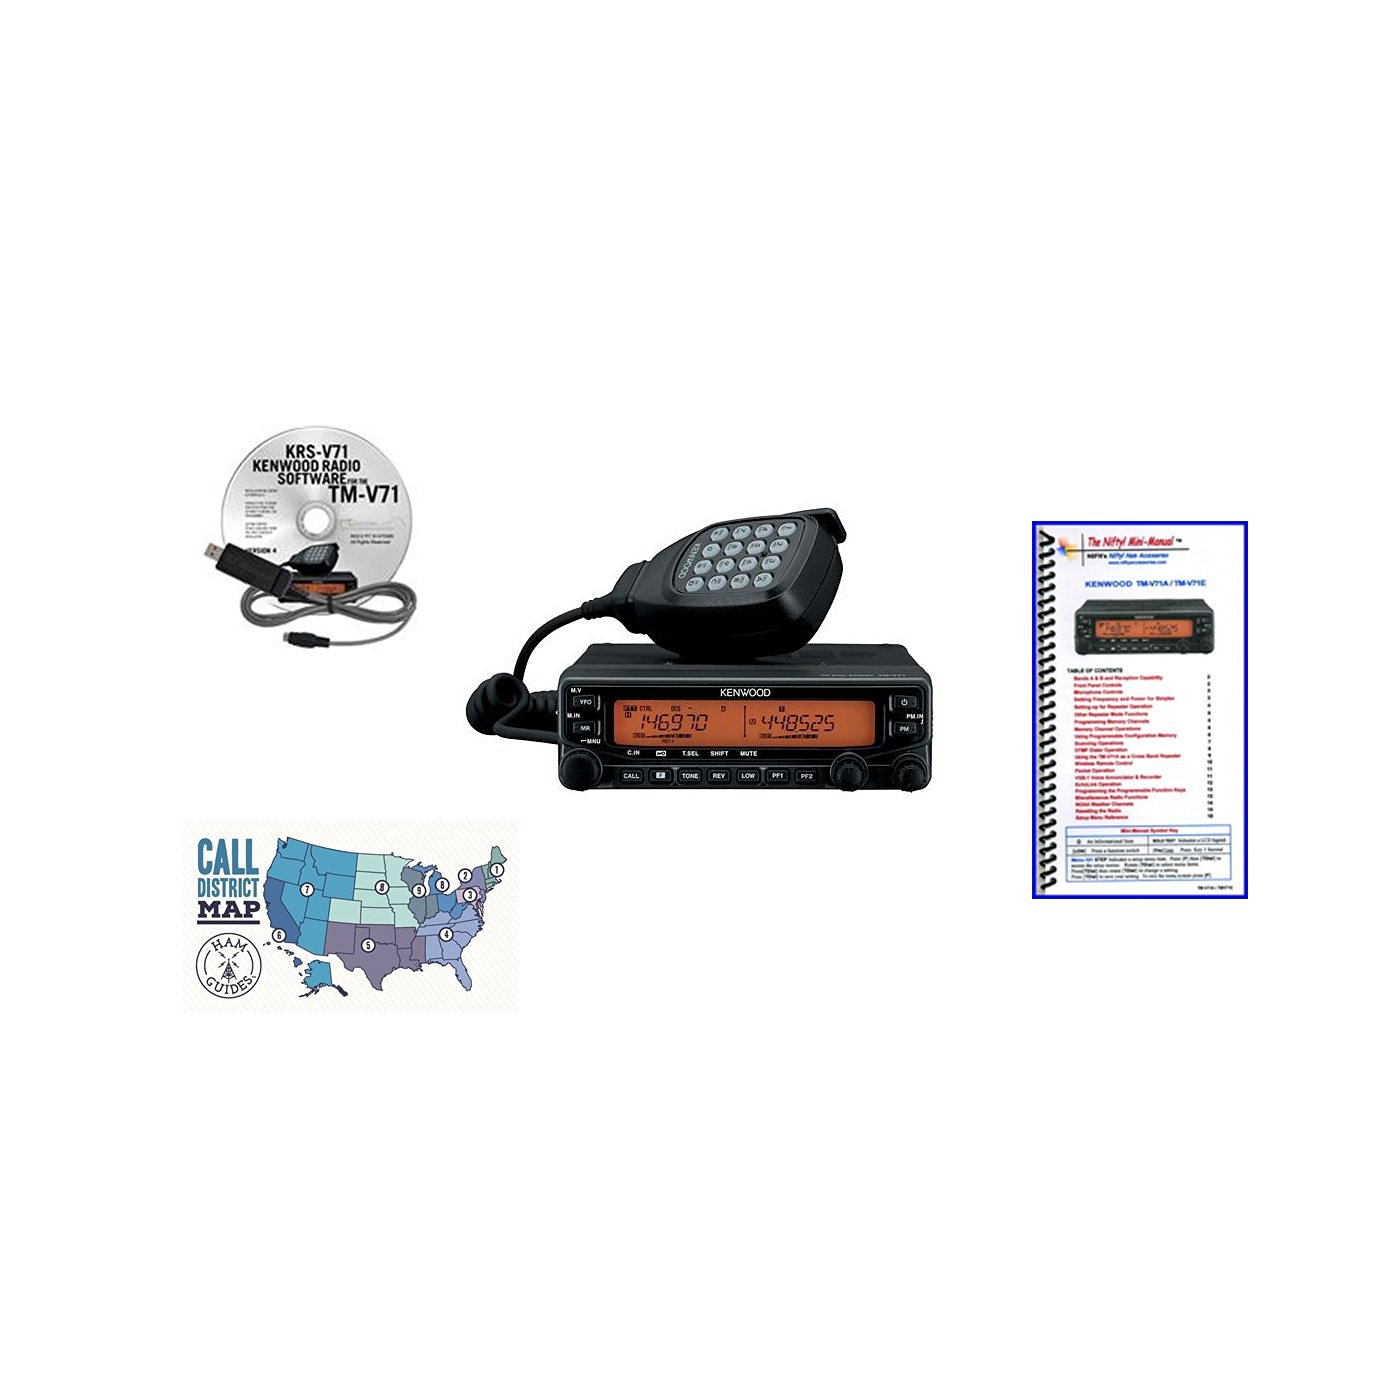 Buy Kenwood TM-V71A Radio - Programming Software/Cable